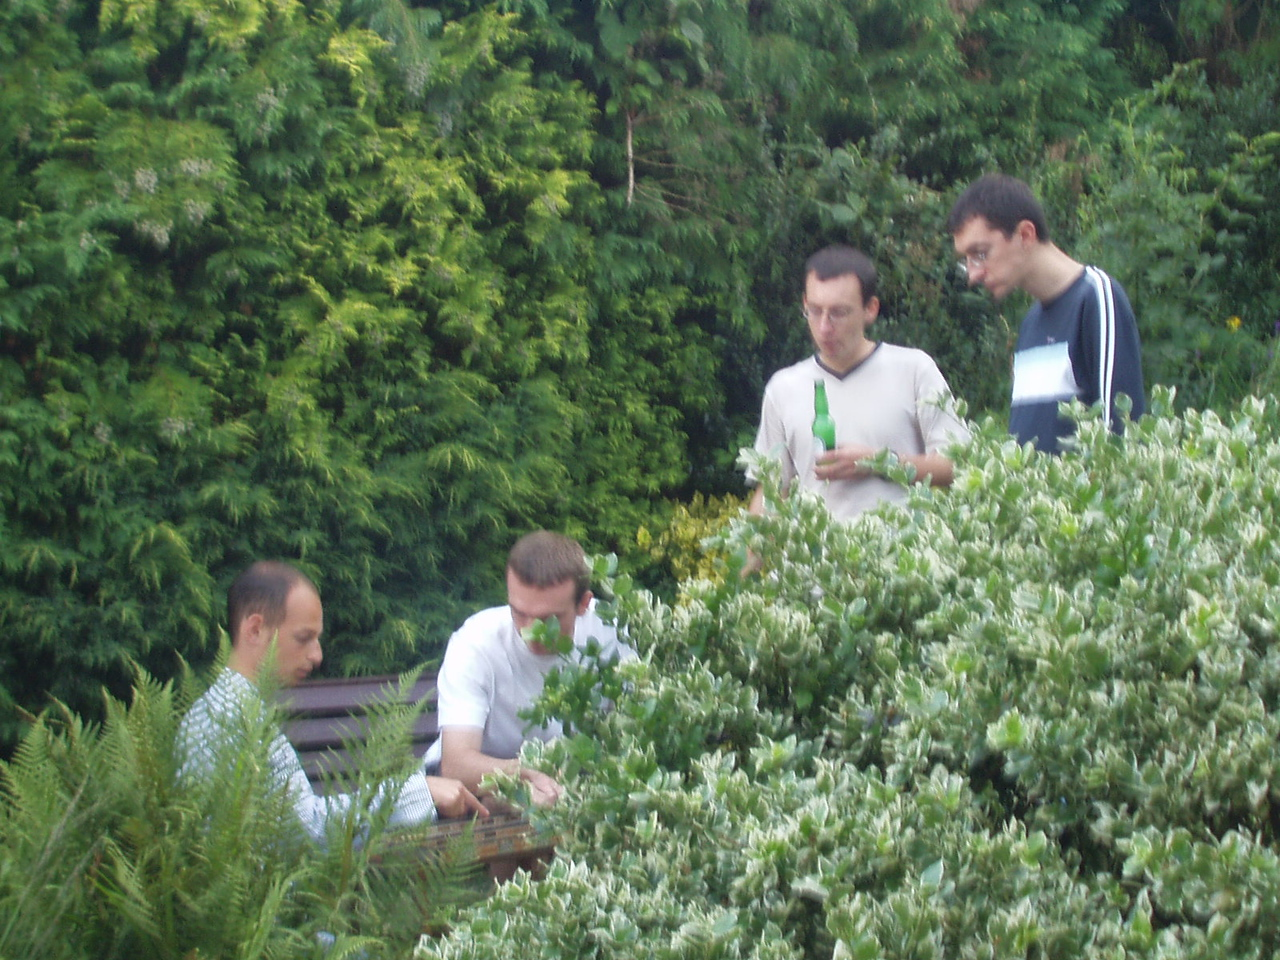 Backgammon in the bushes